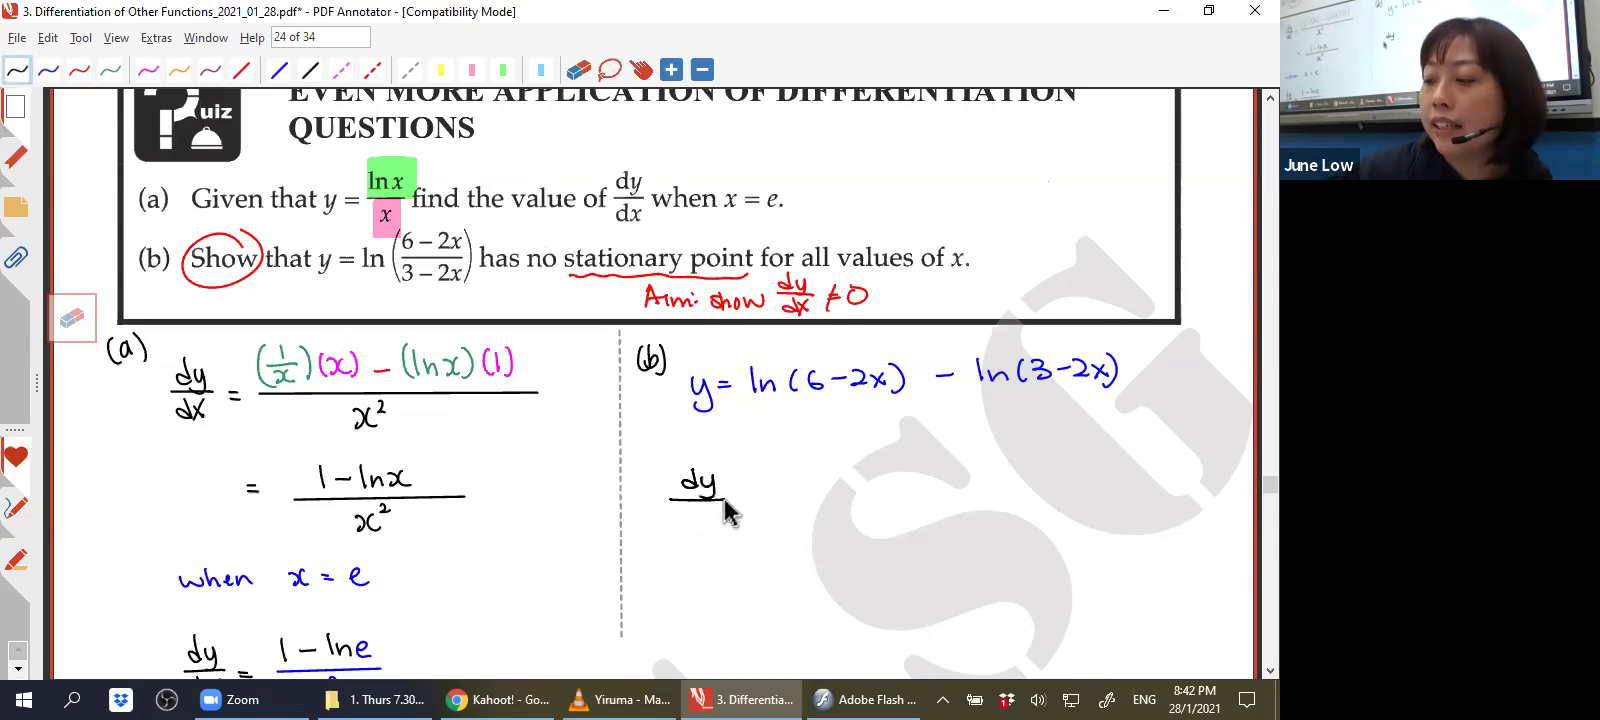 [DIFFERENTIATION OF OTHER FUNCTIONS] Logarithmic Functions